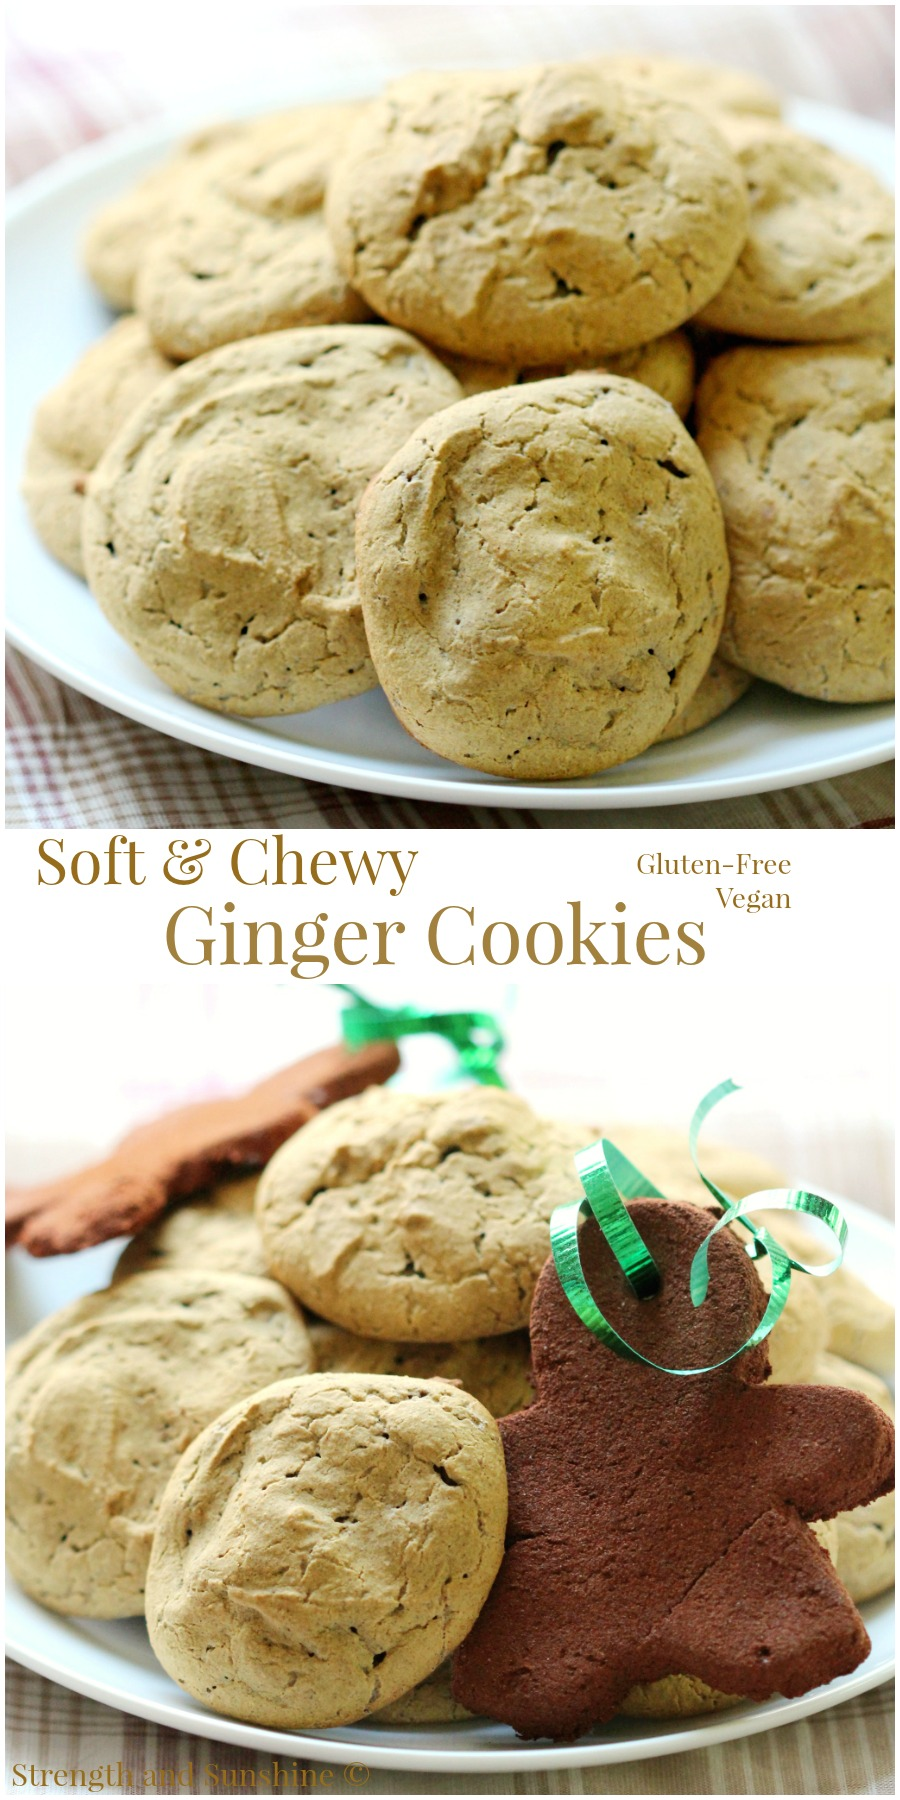 Soft & Chewy Ginger Cookies | Strength and Sunshine @RebeccaGF666 Soft and chewy ginger cookies that are gluten-free and vegan, are like little pillows of ginger joy! When holiday cookie baking is underway, you will want to have this recipe in your arsenal! The perfect healthy recipe to have for dessert this season!